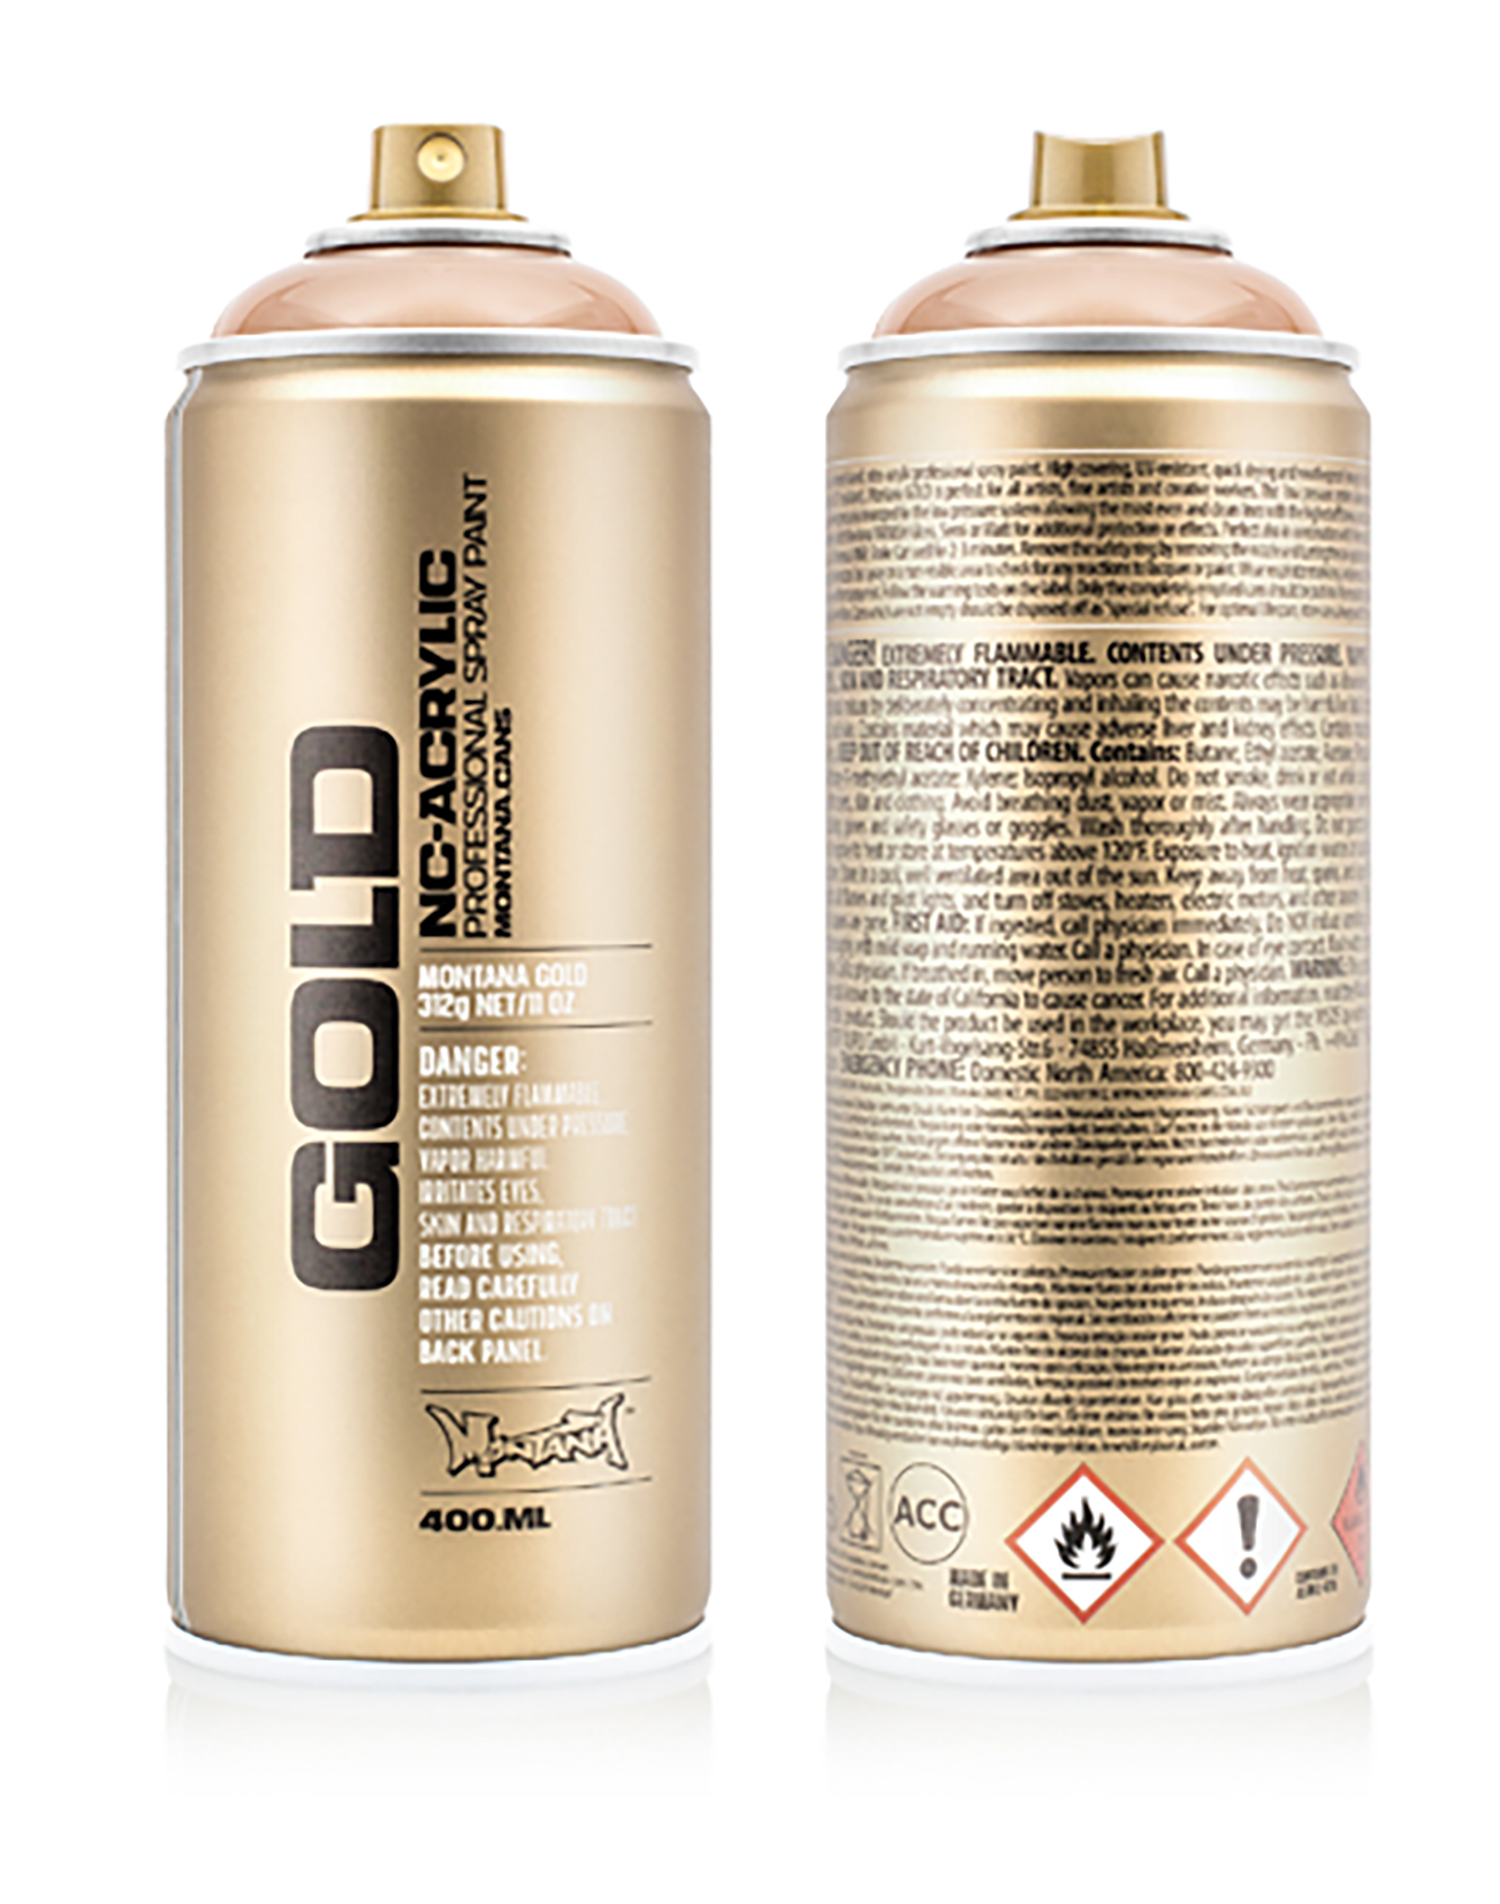 MONTANA-GOLD-SPRAY-400ML-T1440